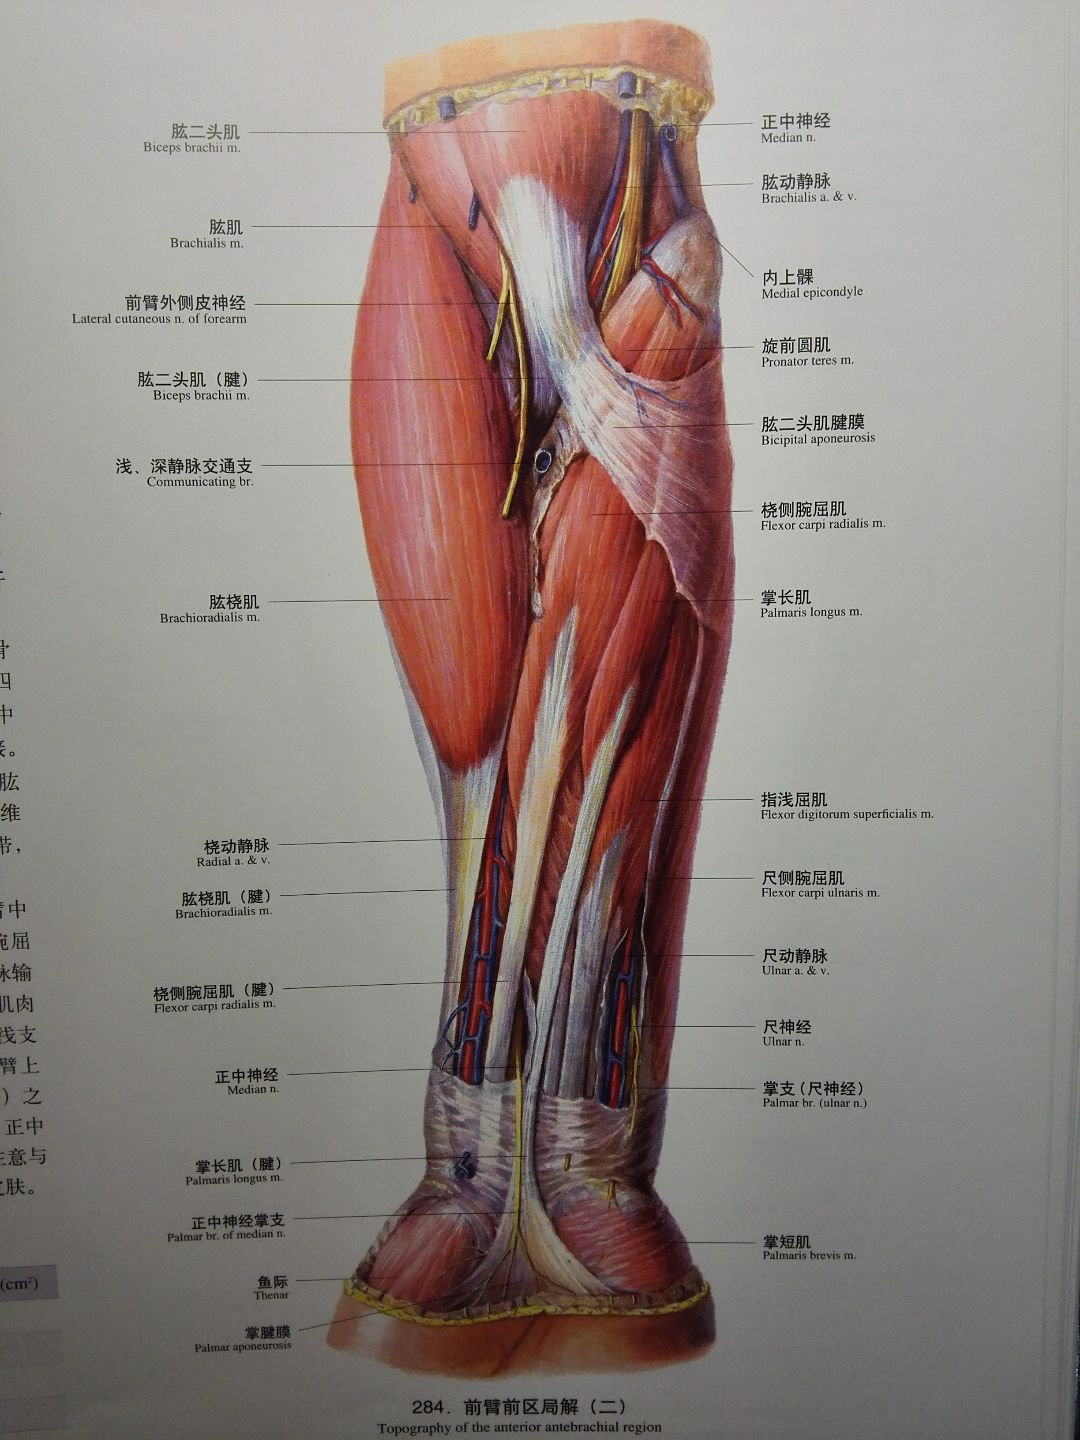 Anatomy of the forearm and hand